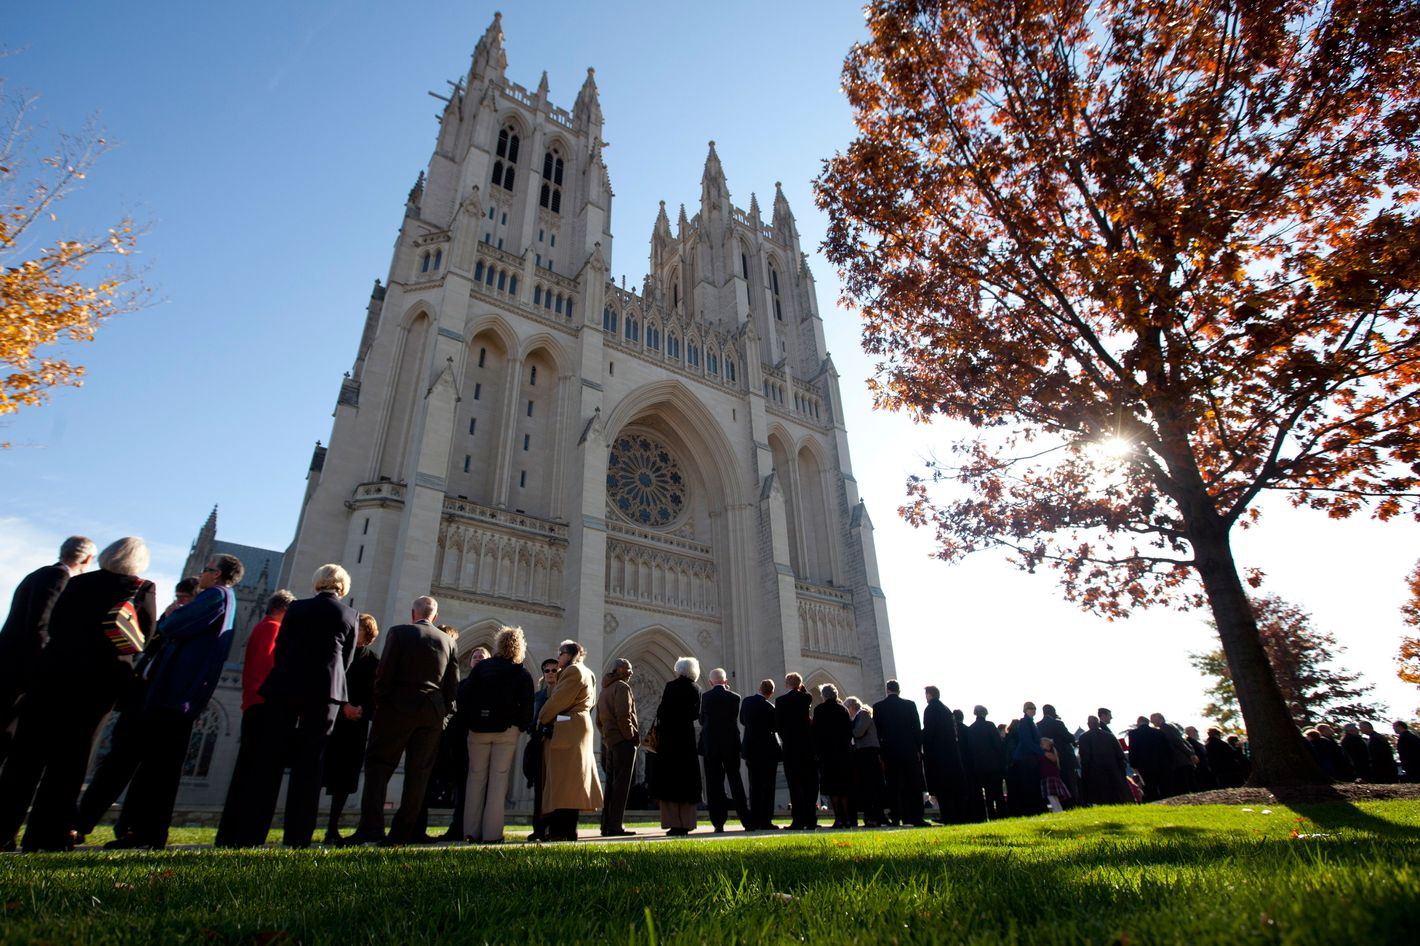 People wait outside the Washington National Cathedral before the consecration service of Washington's first woman and 9th Episcopal Bishop, the Rev. Mariann Edgar Budde, Saturday, Nov. 12, 2011.